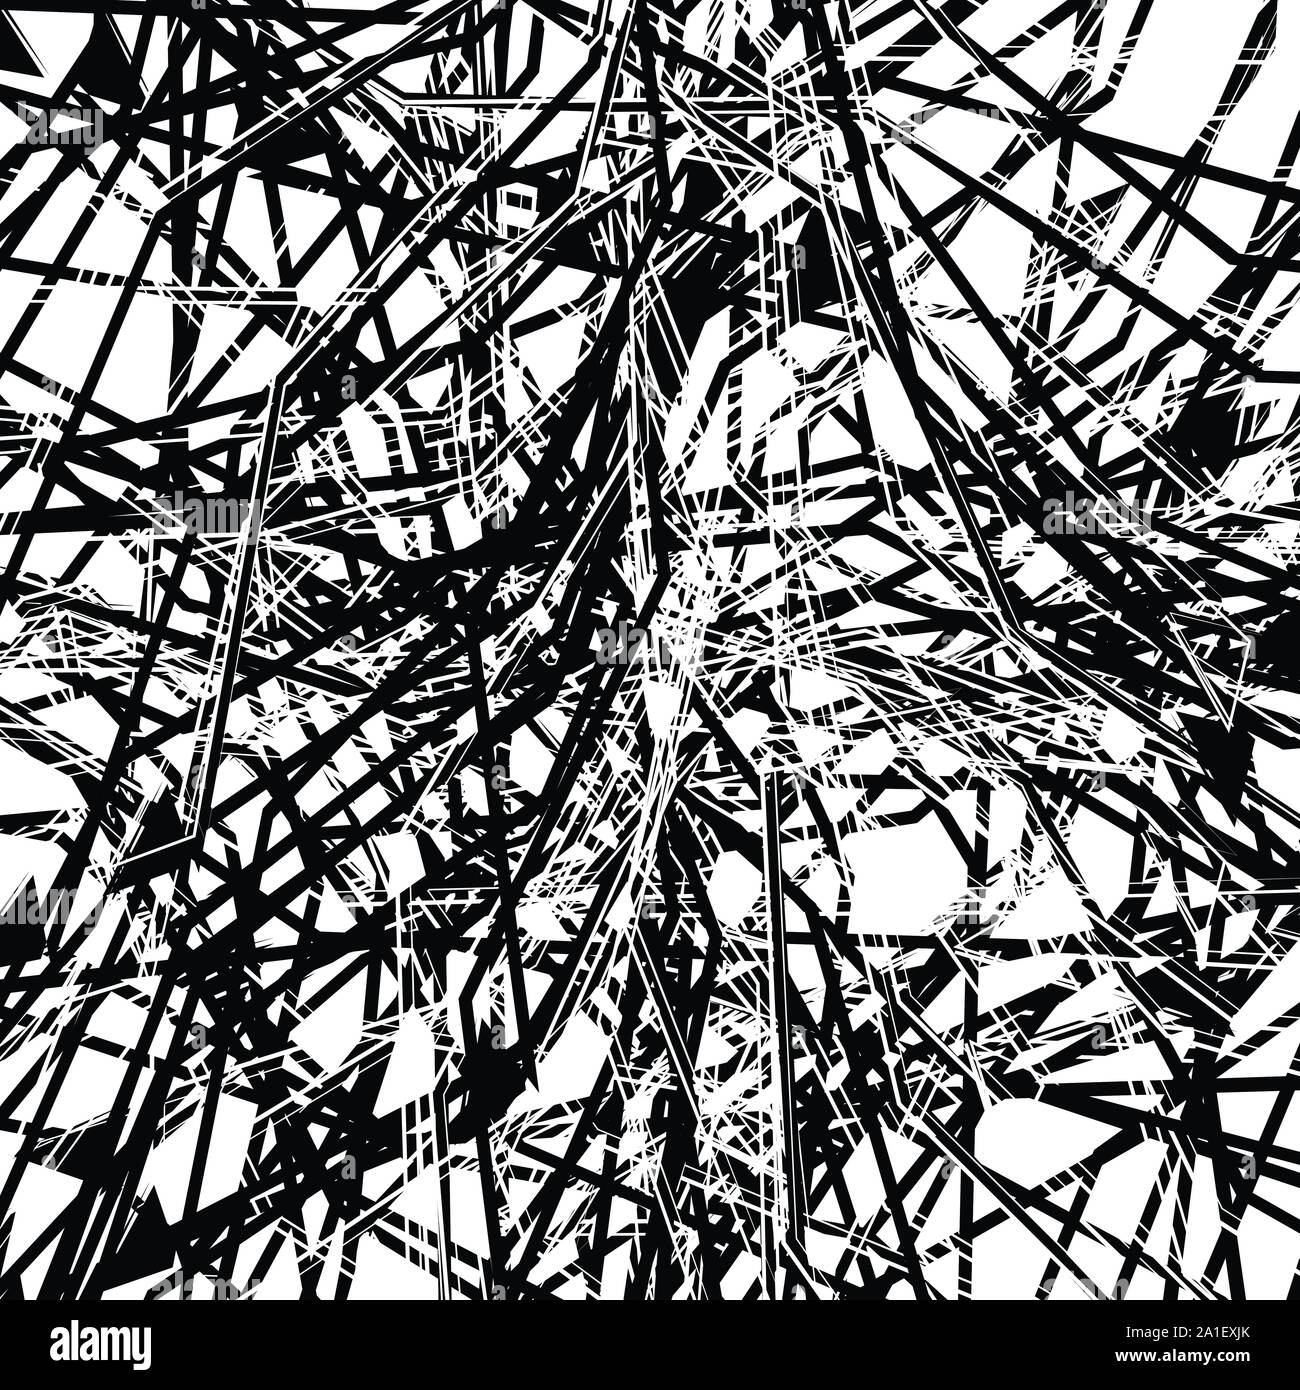 Abstract Art With Deformation Distortion Effect On Random